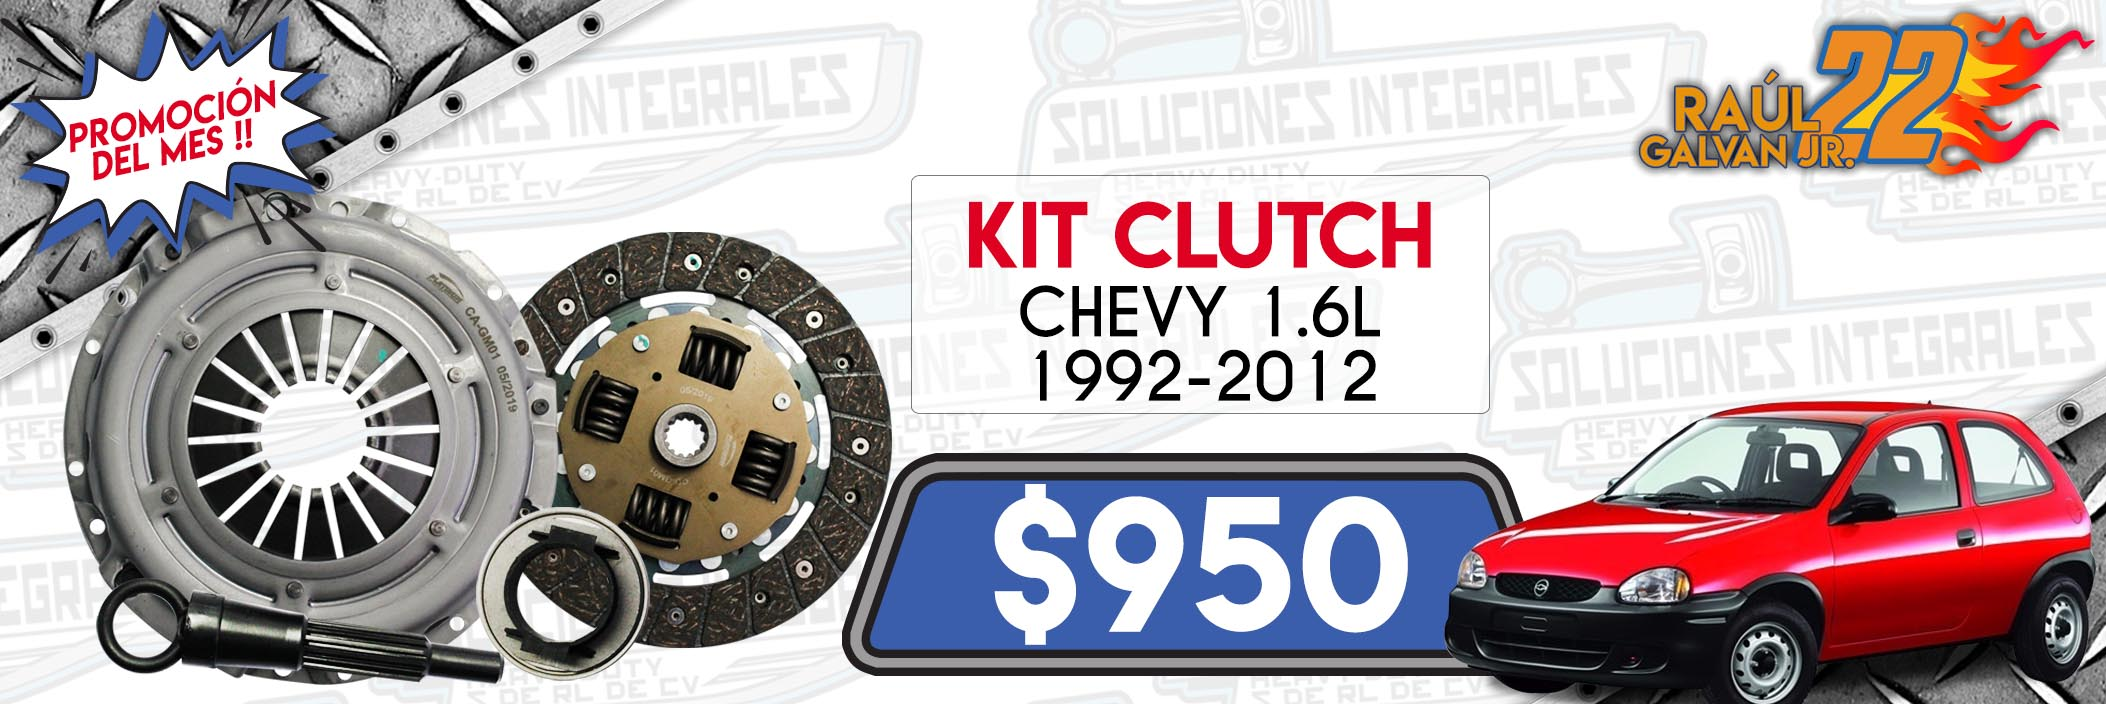 kit clutch chevy 1.6l 1992-2012